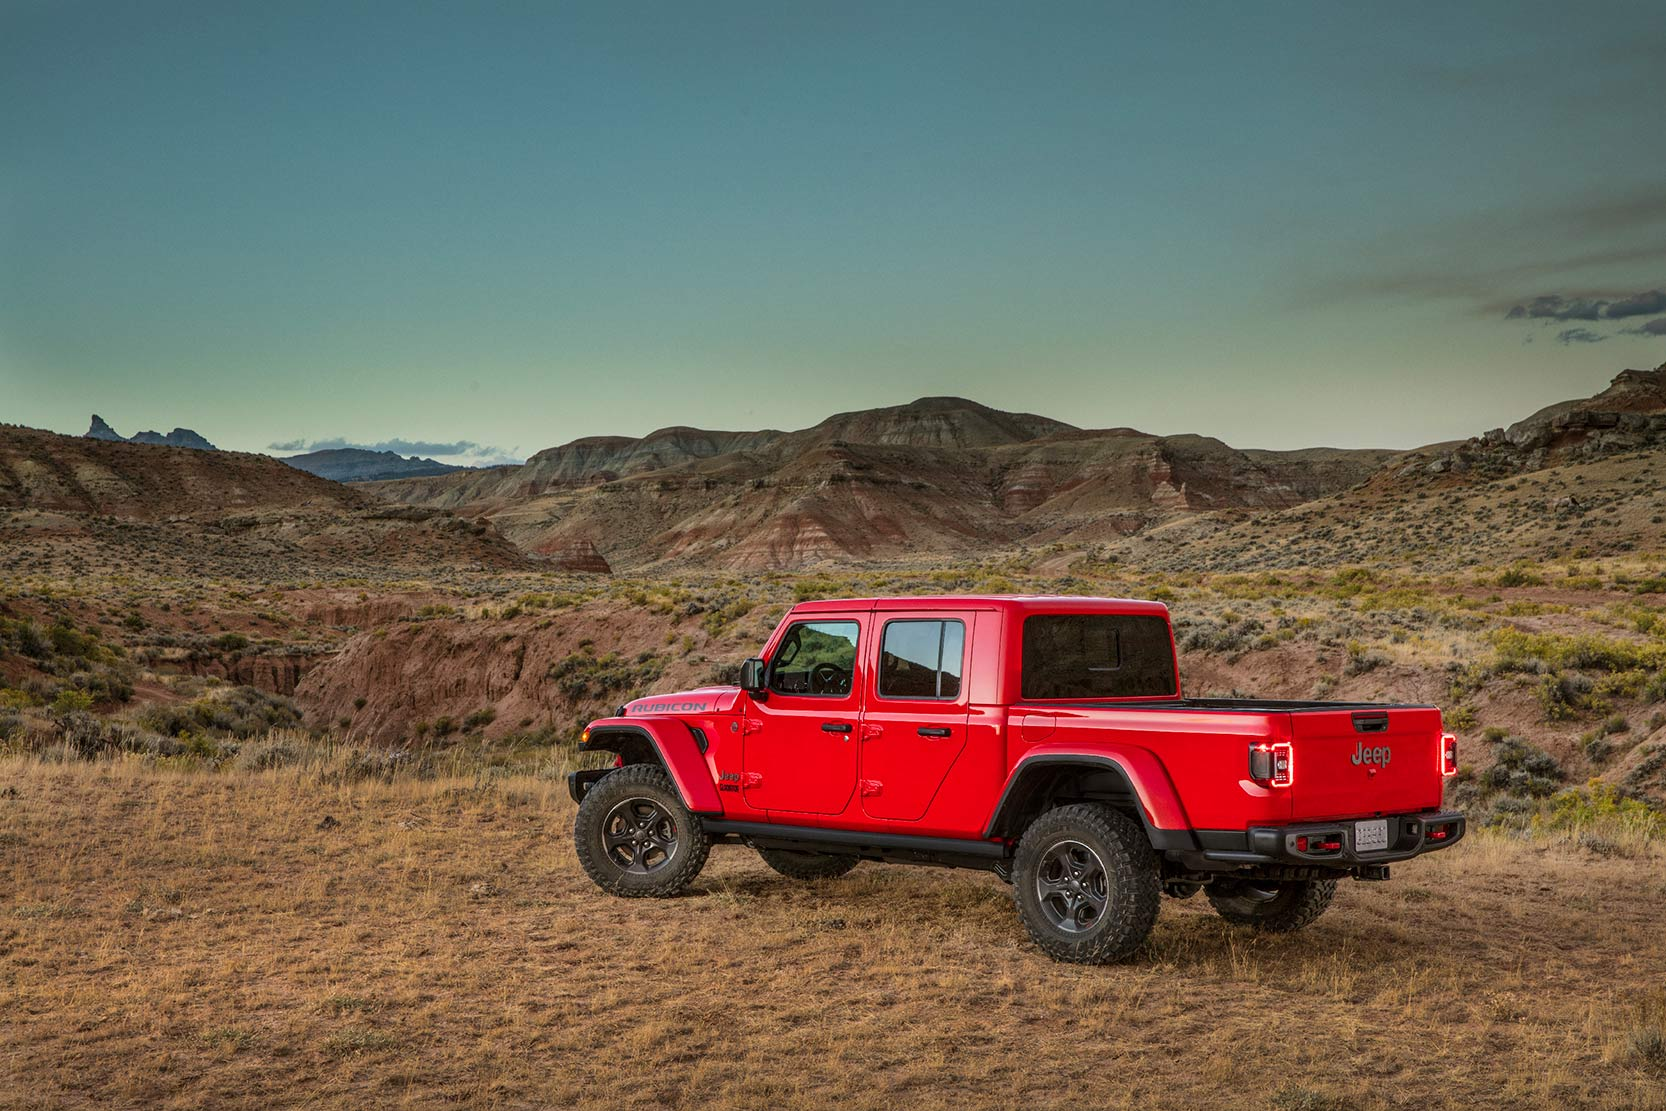 Exterieur_Jeep-Gladiator_4